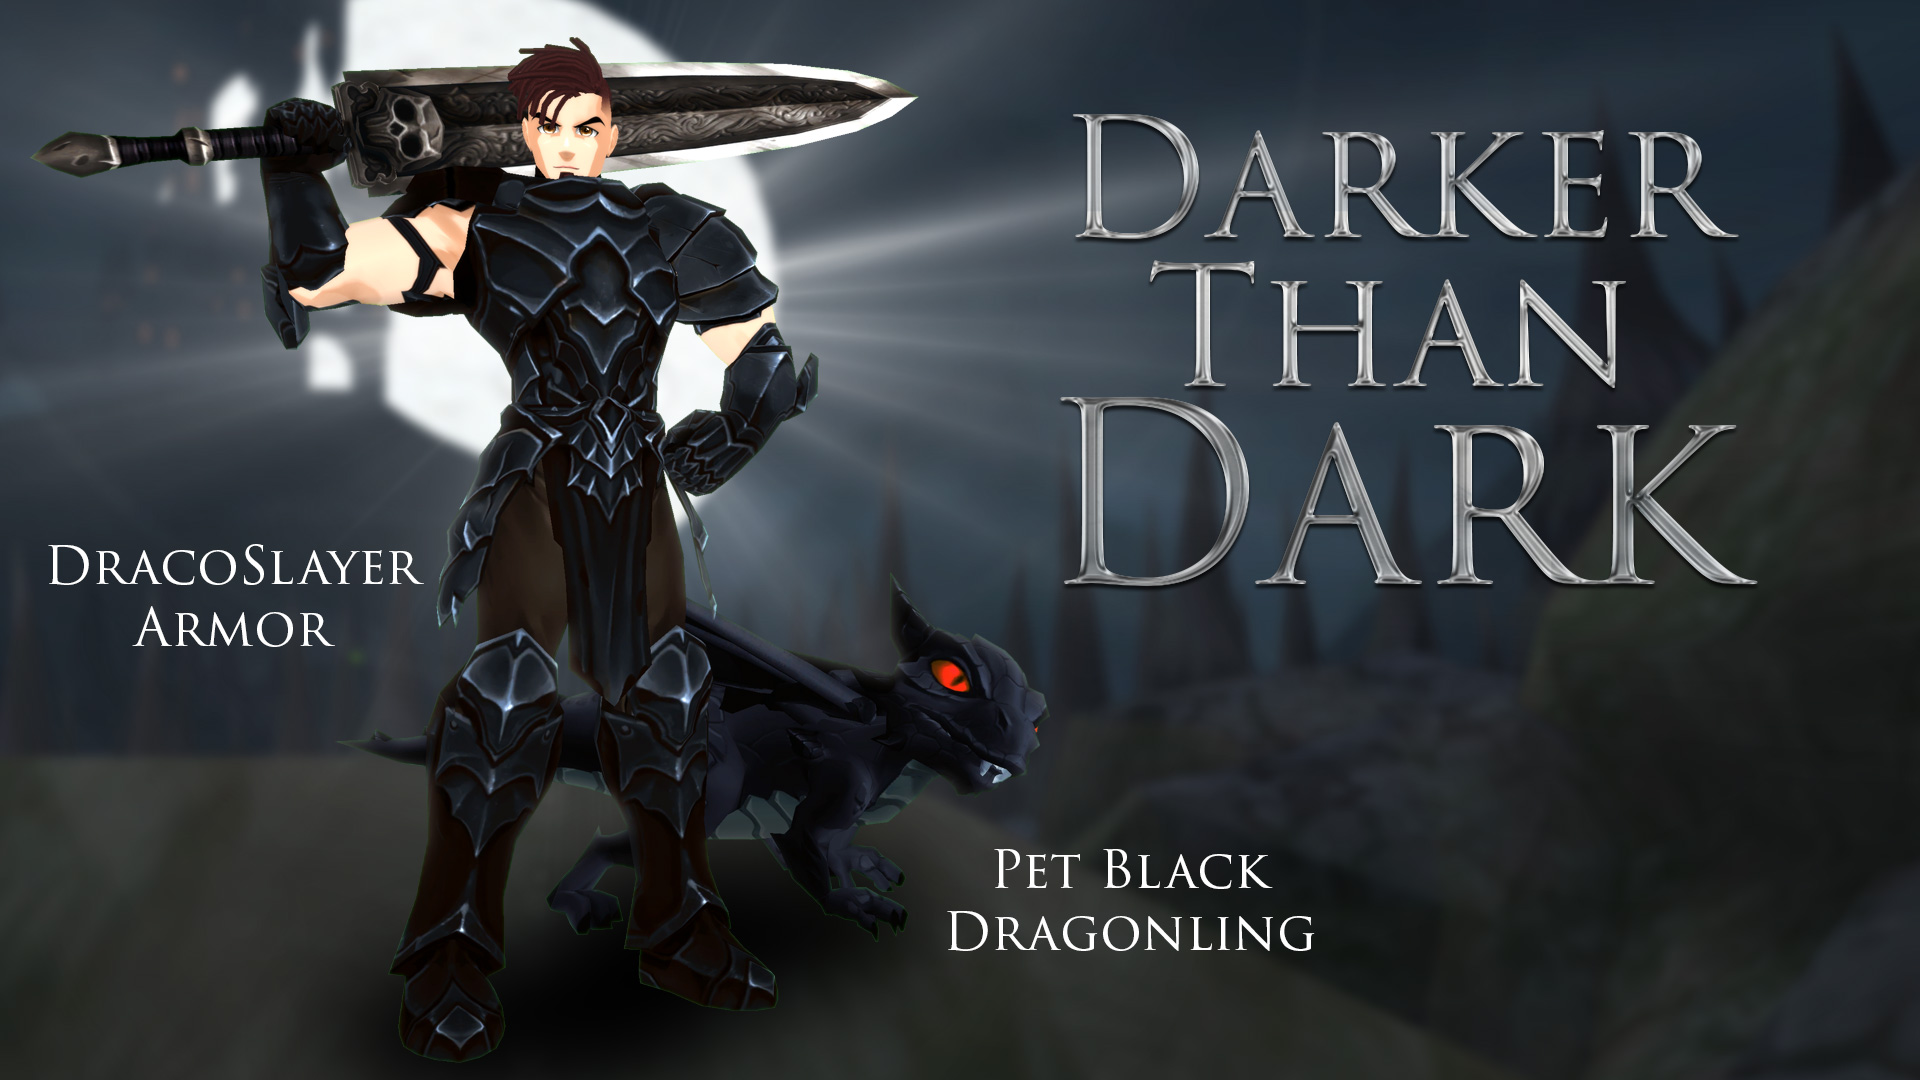 Dracoslayer Armor and Pet Black Dragonling